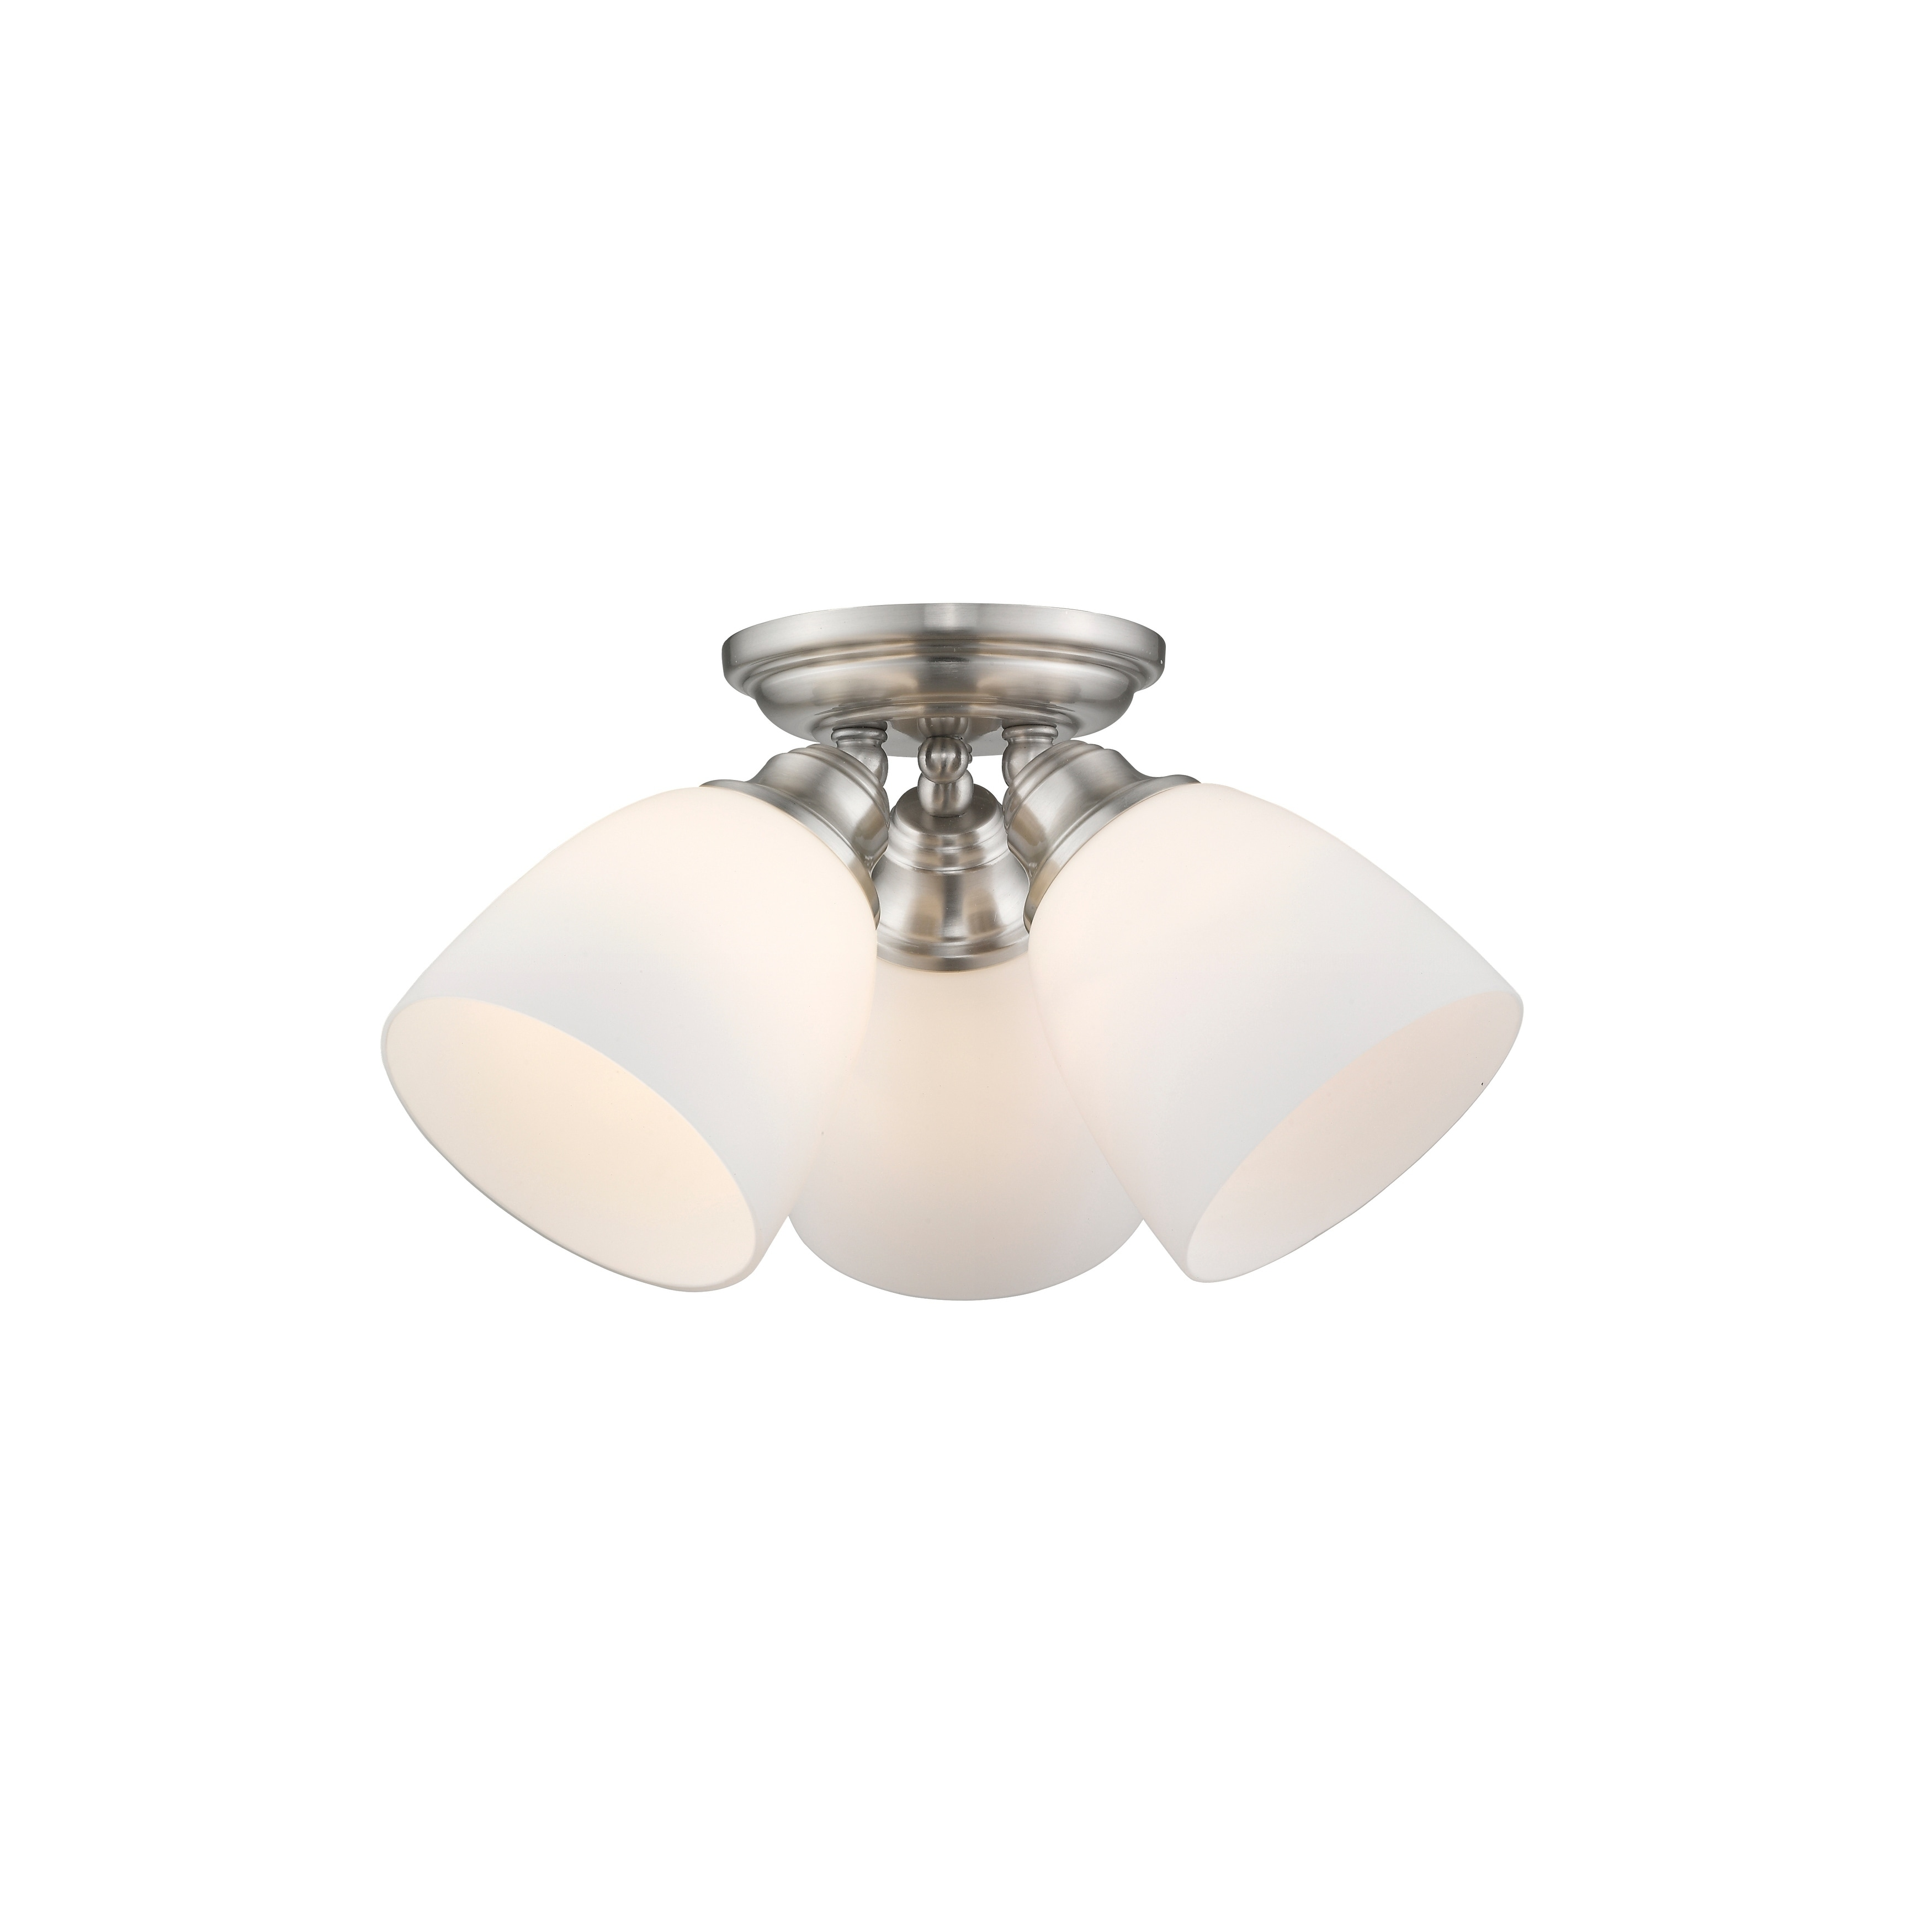 Shop livex lighting somerville brushed nickel satin opal white glass shop livex lighting somerville brushed nickel satin opal white glass 3 light ceiling mount fixture free shipping today overstock 12090460 aloadofball Image collections